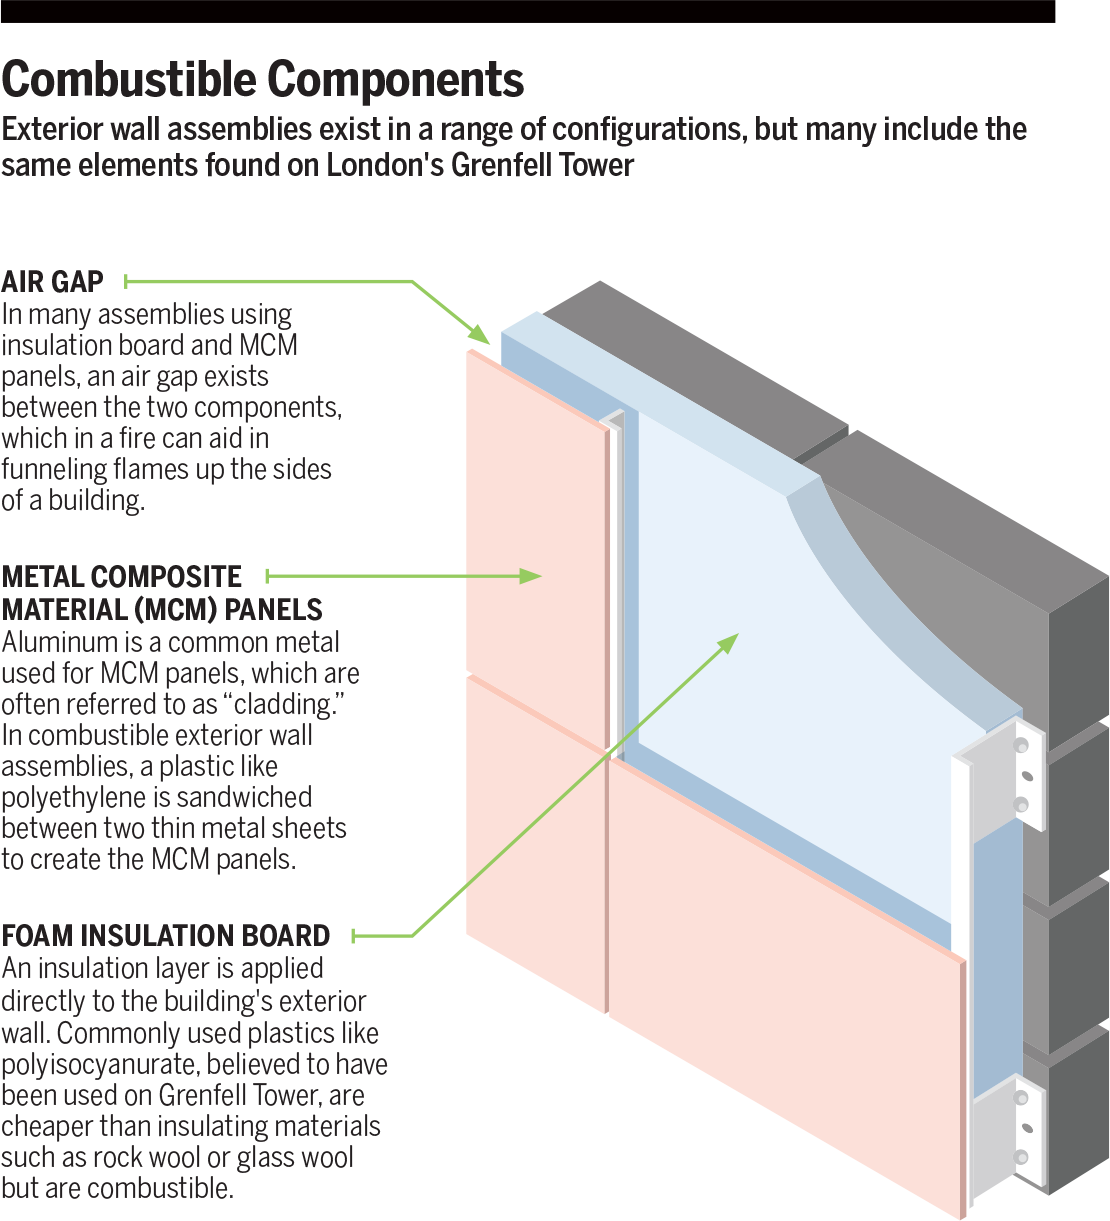 Combustible Components Graphic